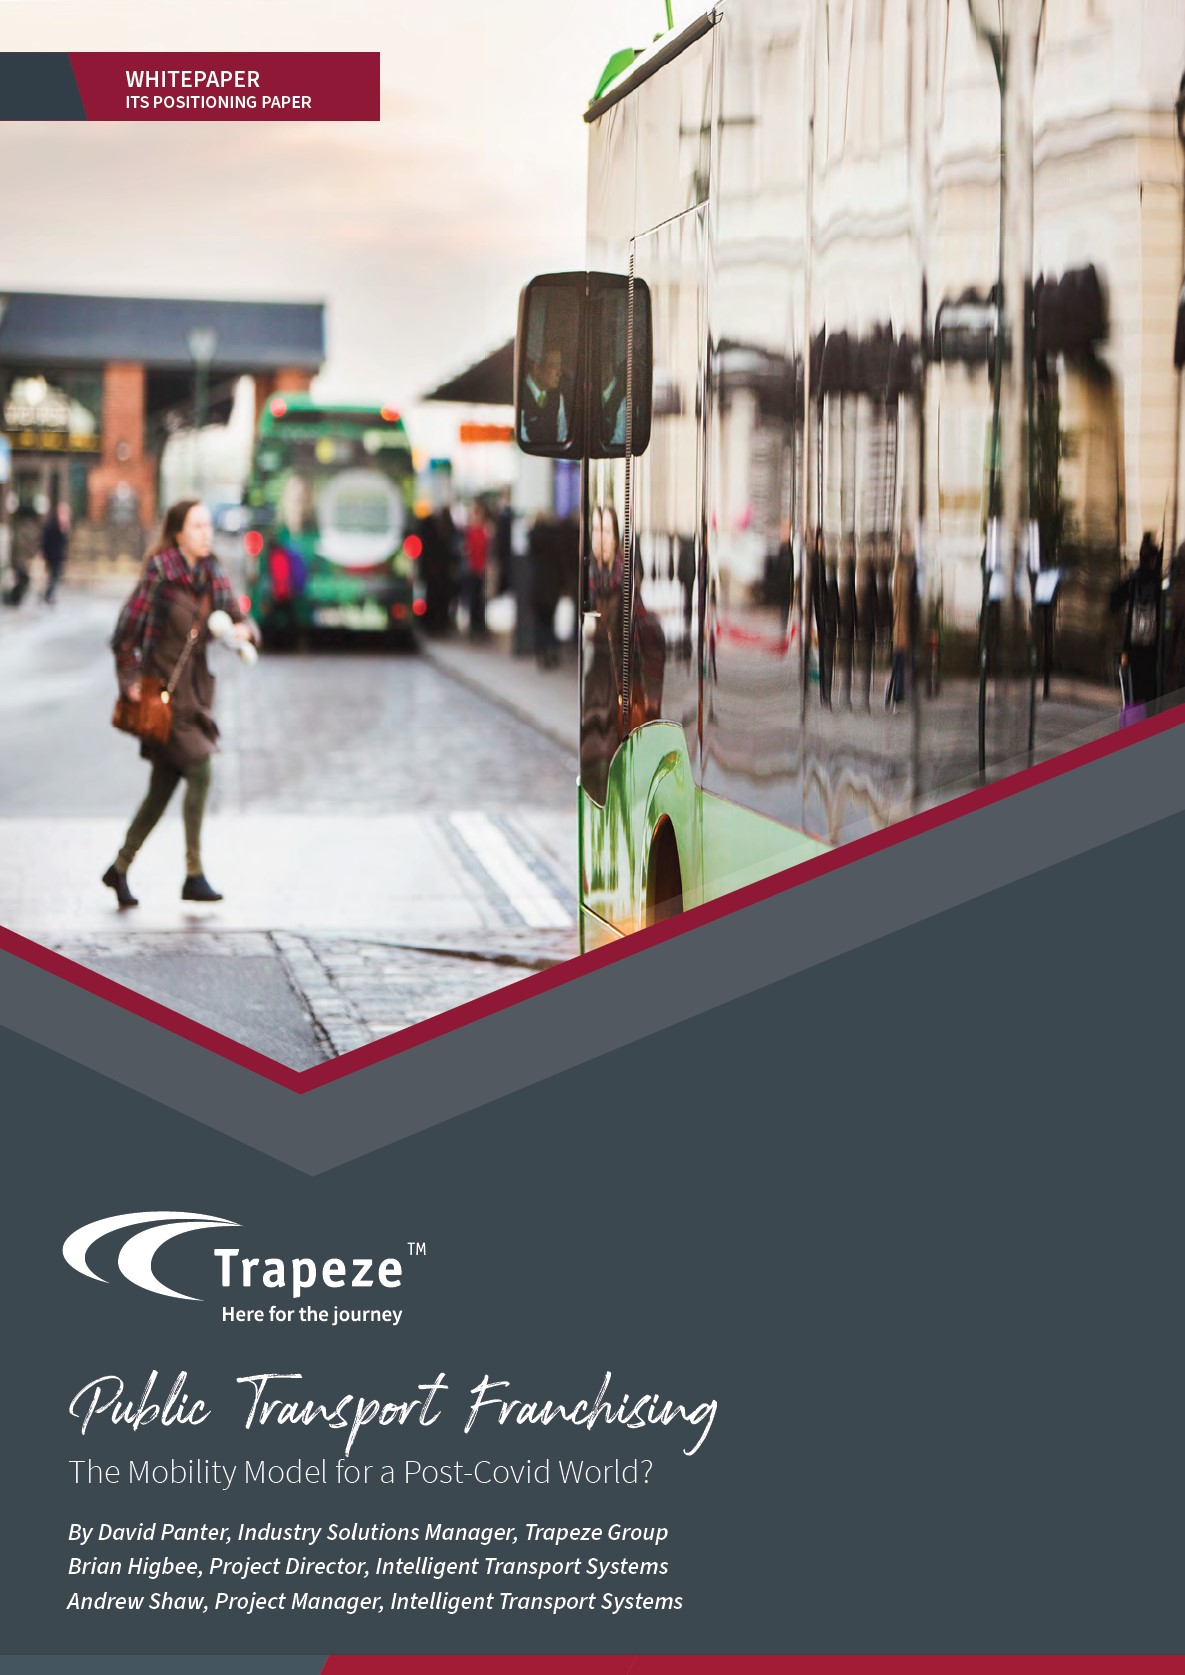 Franchising Model and Intelligent Transport Systems for Public Transport | Trapeze Group